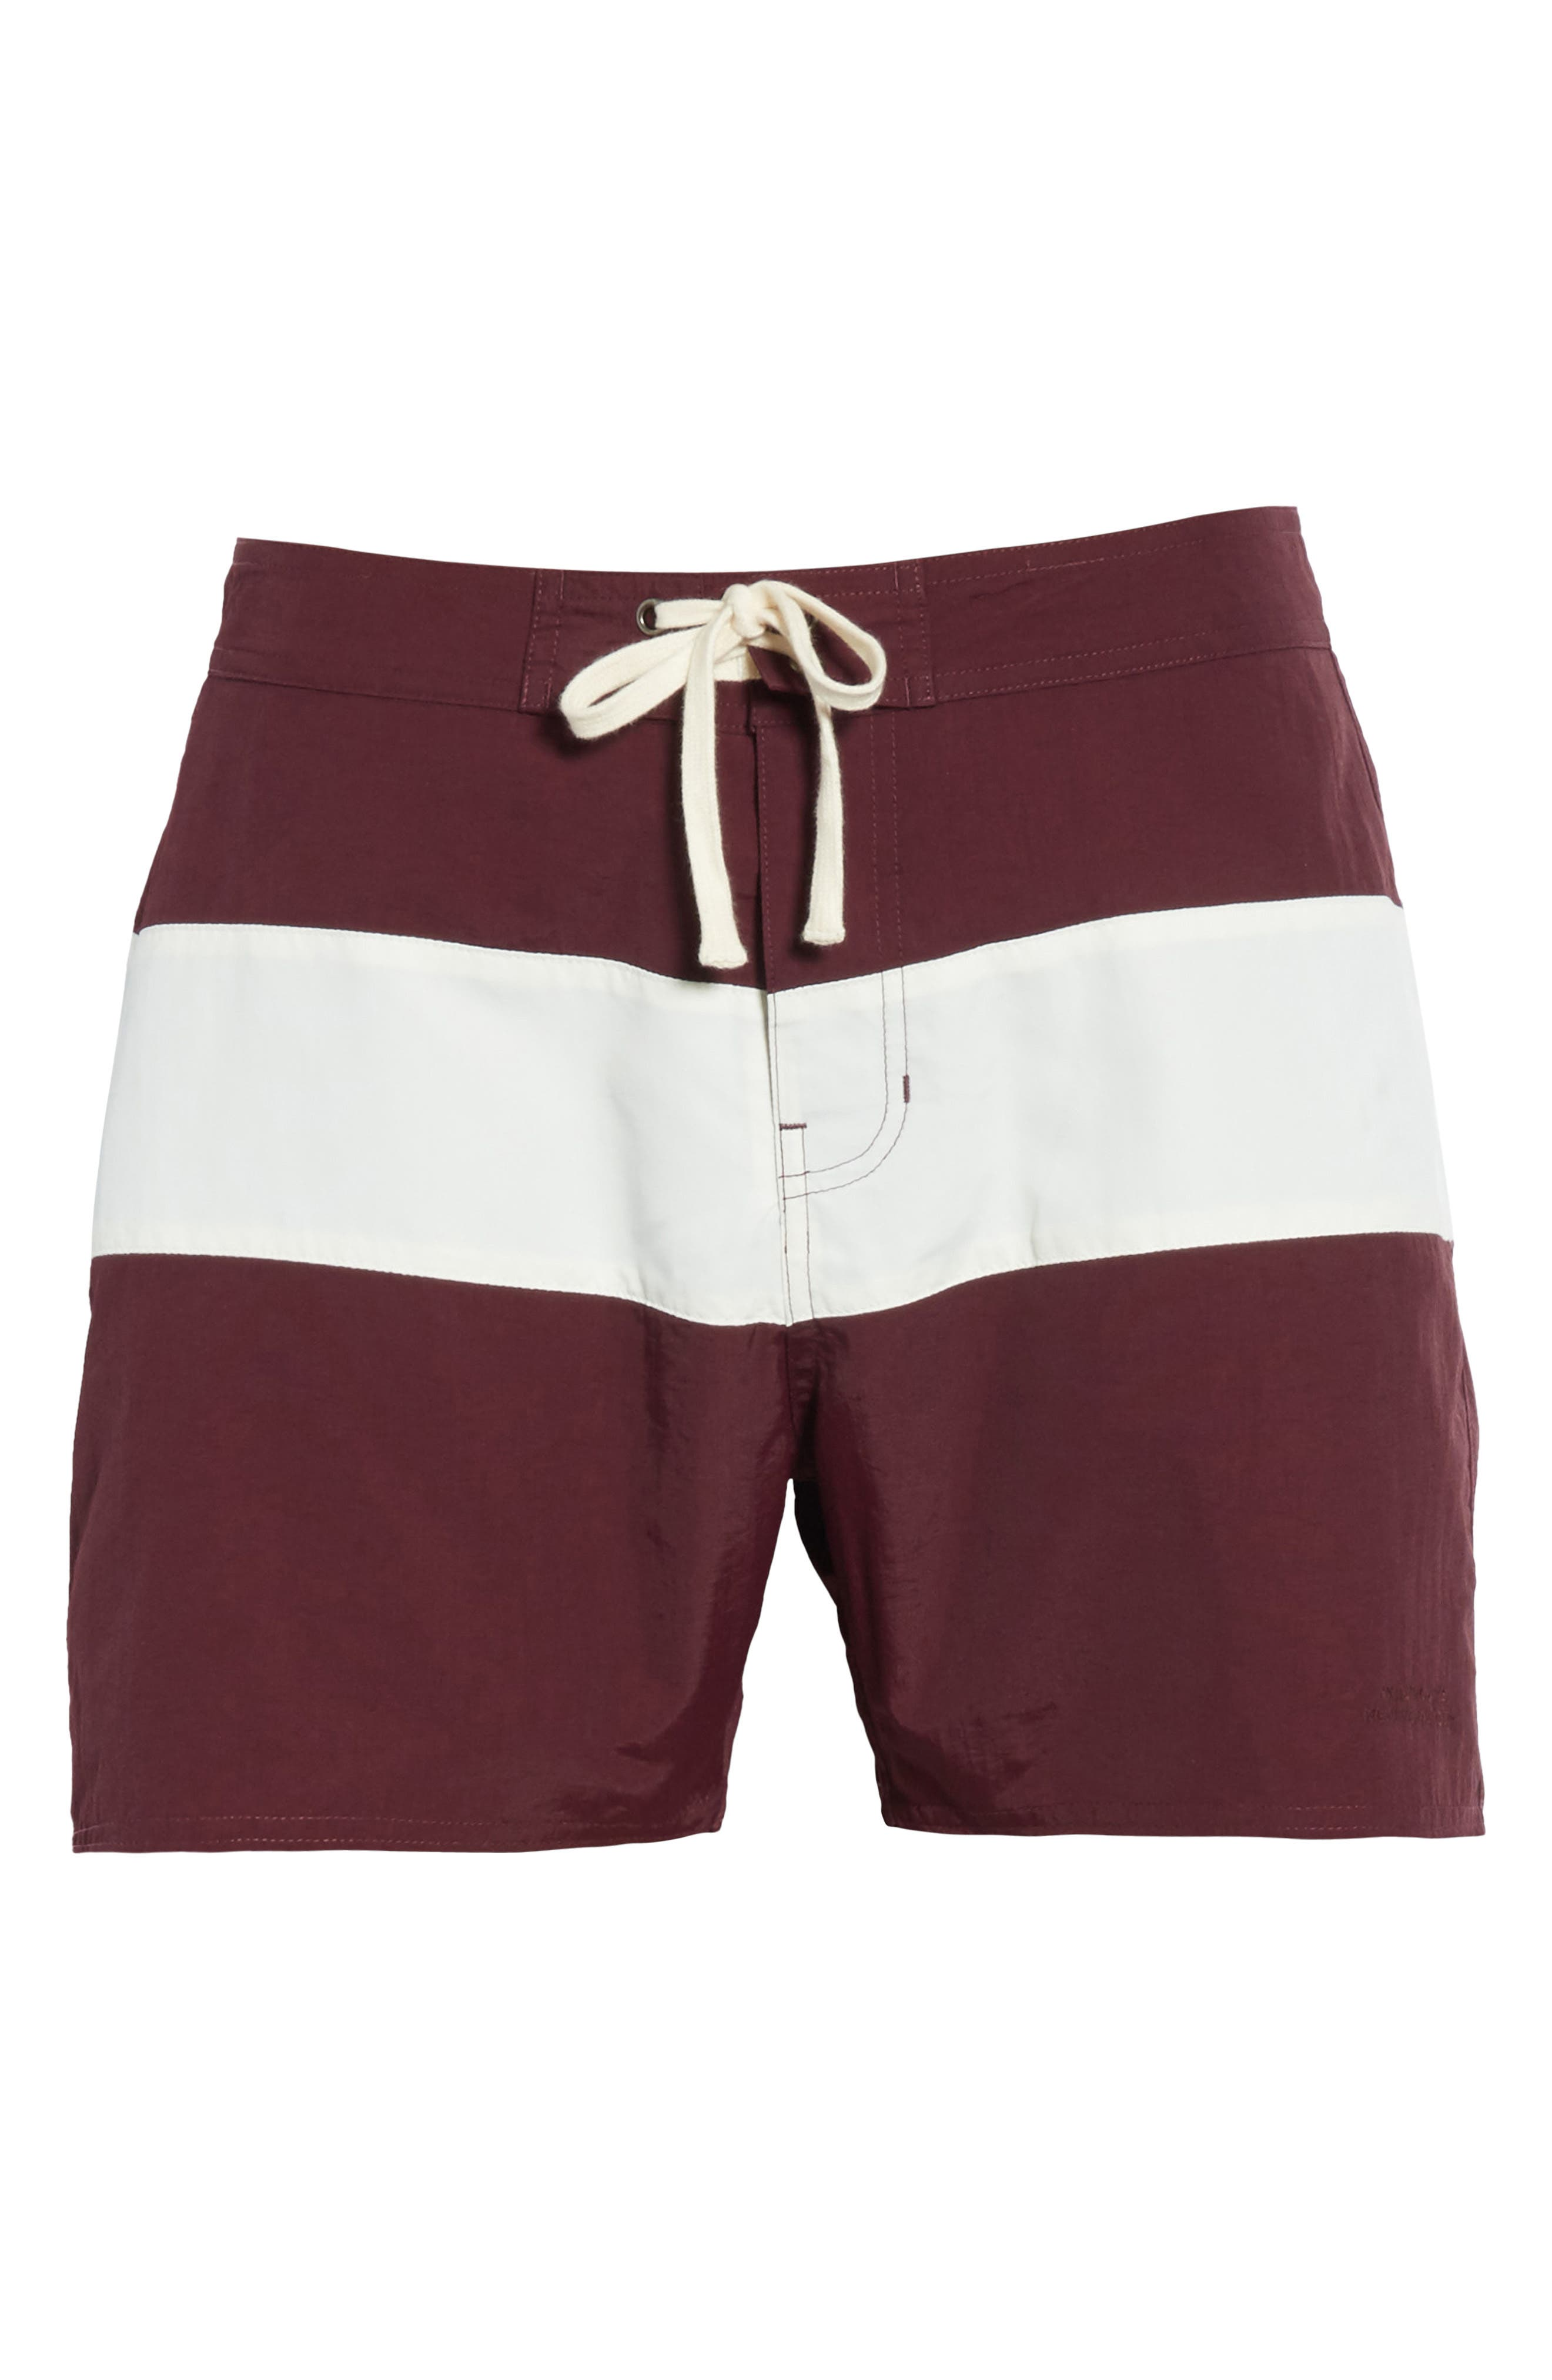 Grant Board Shorts,                             Alternate thumbnail 6, color,                             597